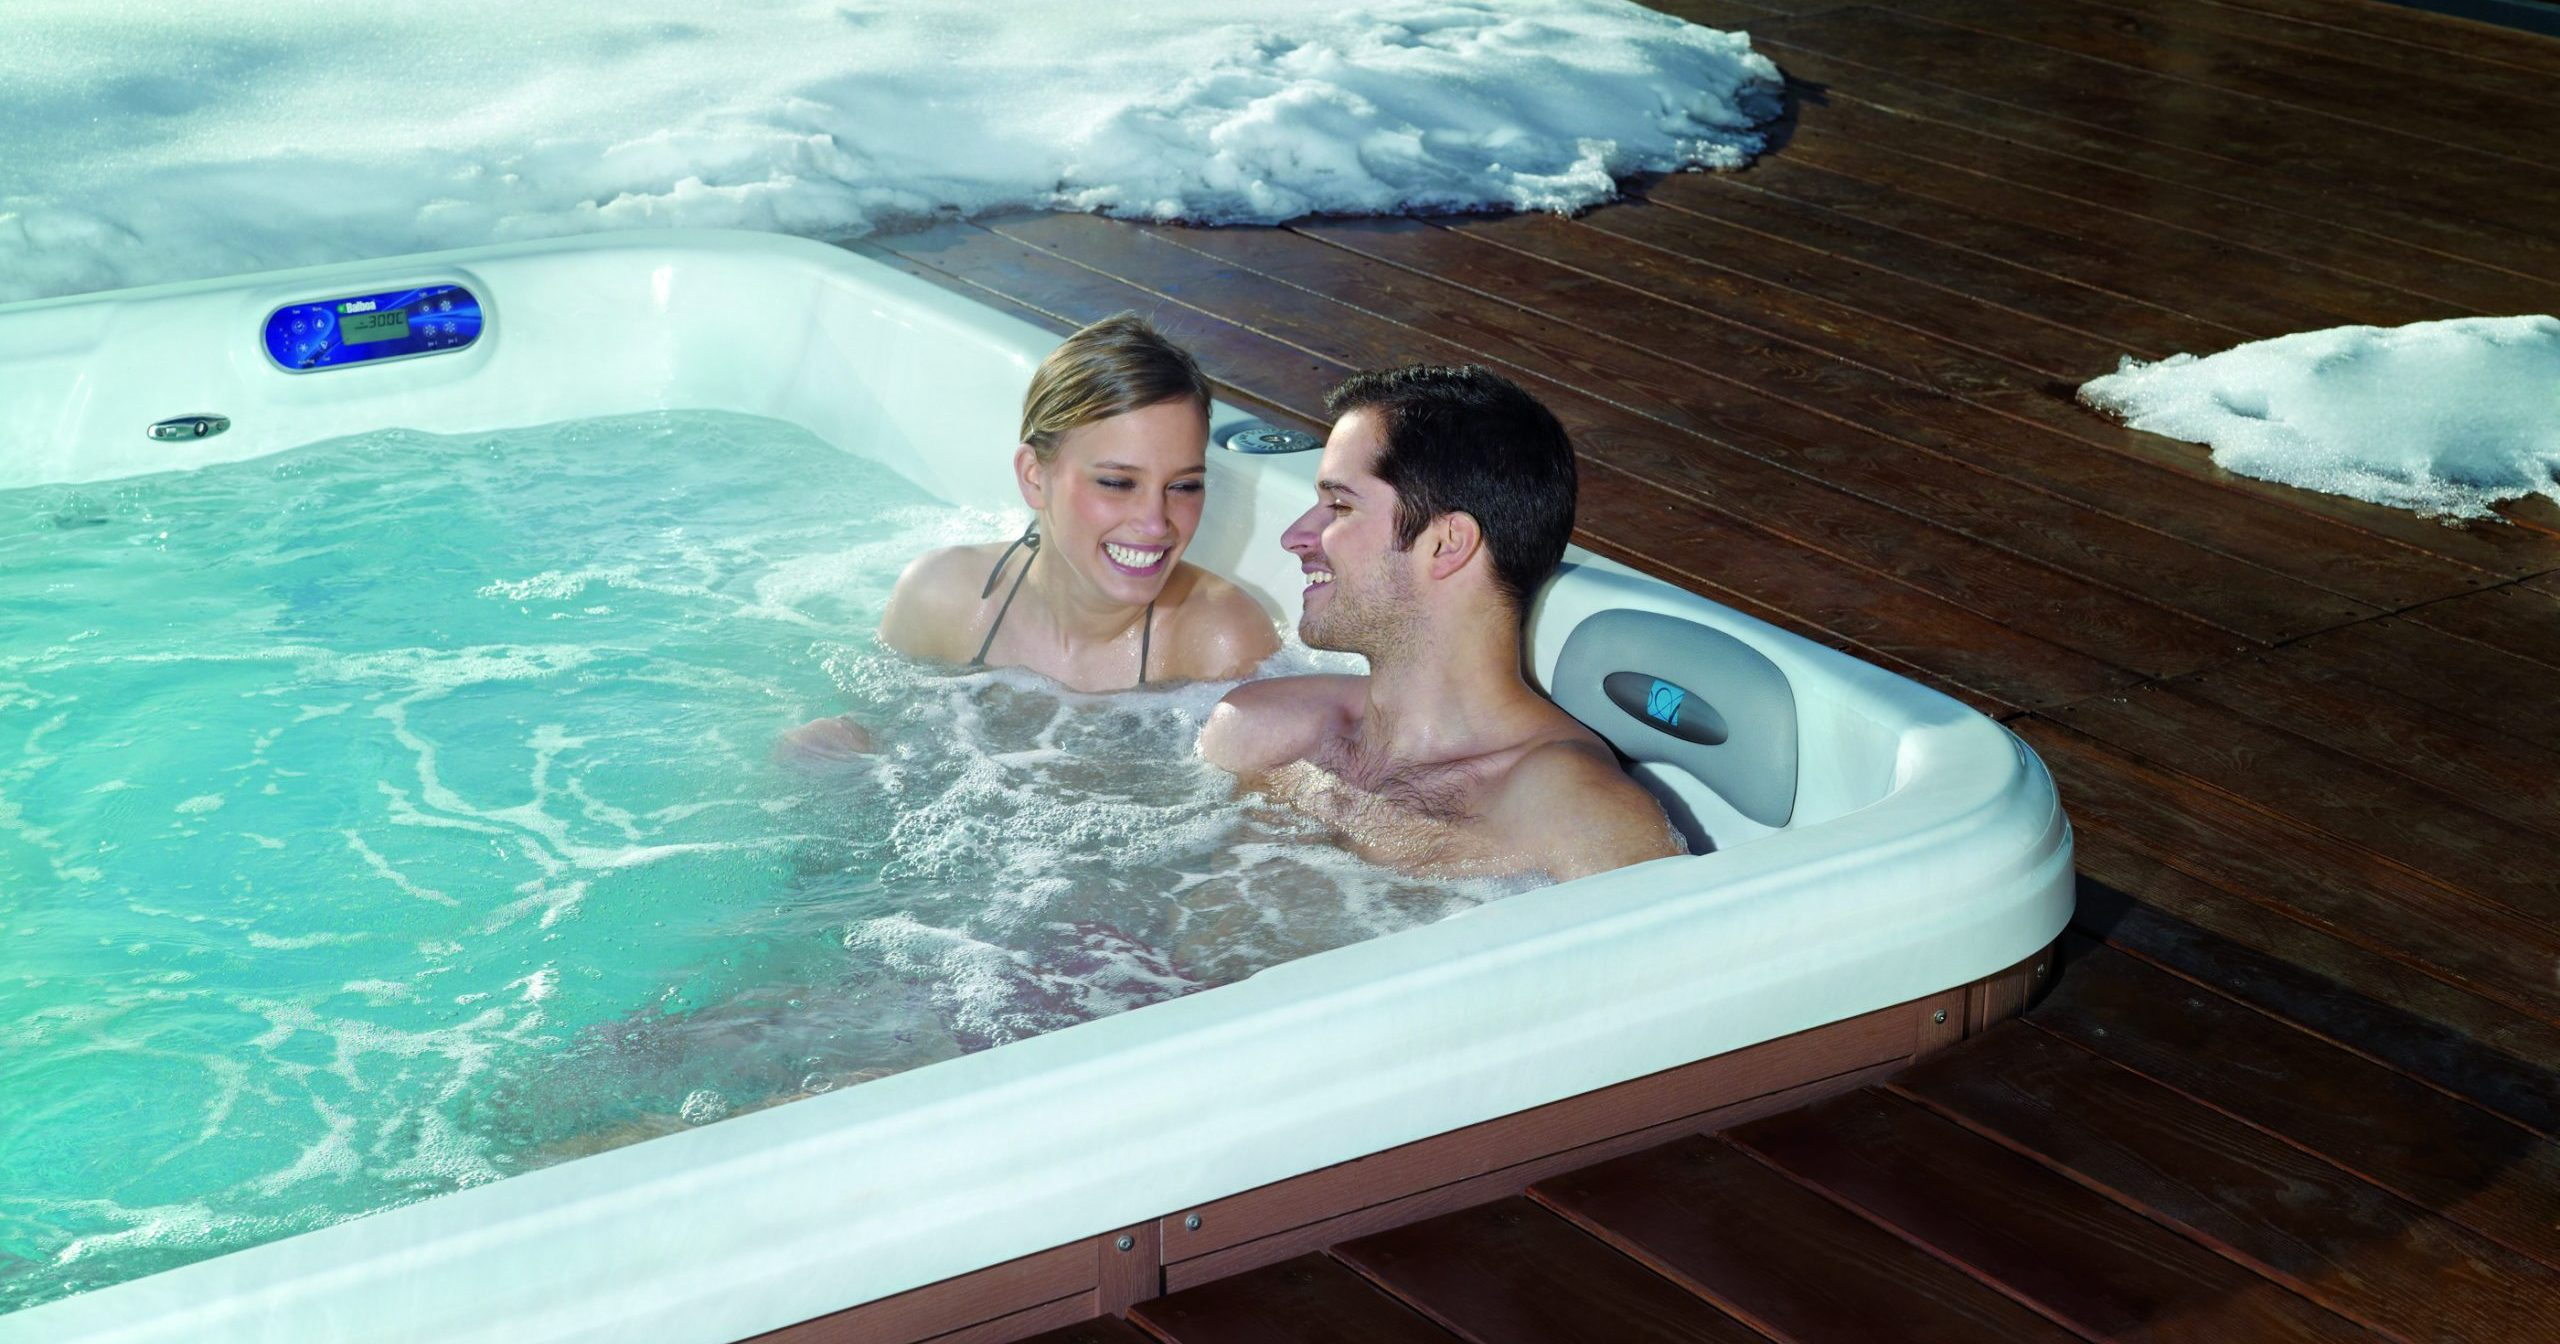 Man and woman enjoying a warm soak in a TidalFit swim spa